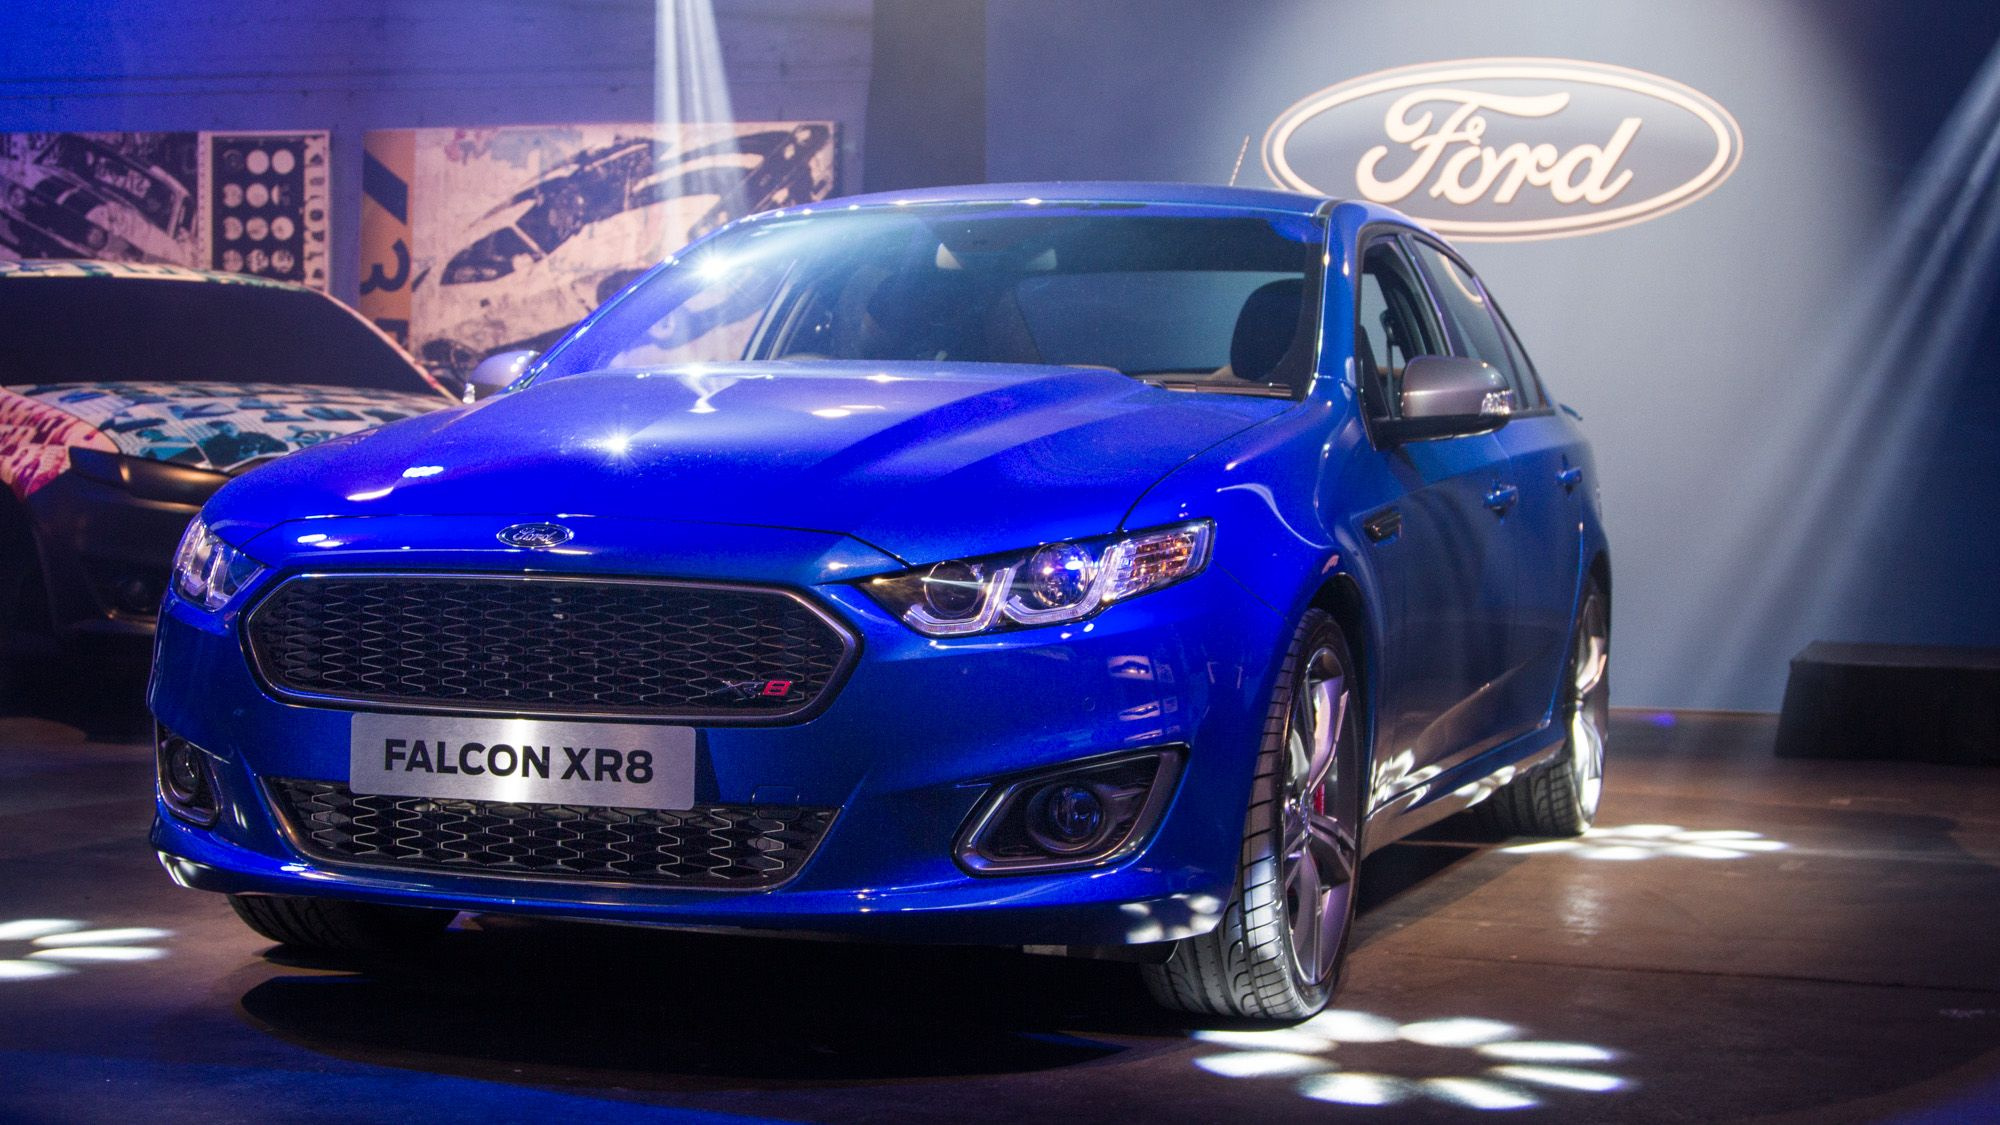 Ford Falcon Xr8 Unveiled In Melbourne Http Www Caradvice Com Au 312030 Ford Falcon Xr8 Unveiled In Melbourne Ford Falcon Ford Falcon Xr8 Ford